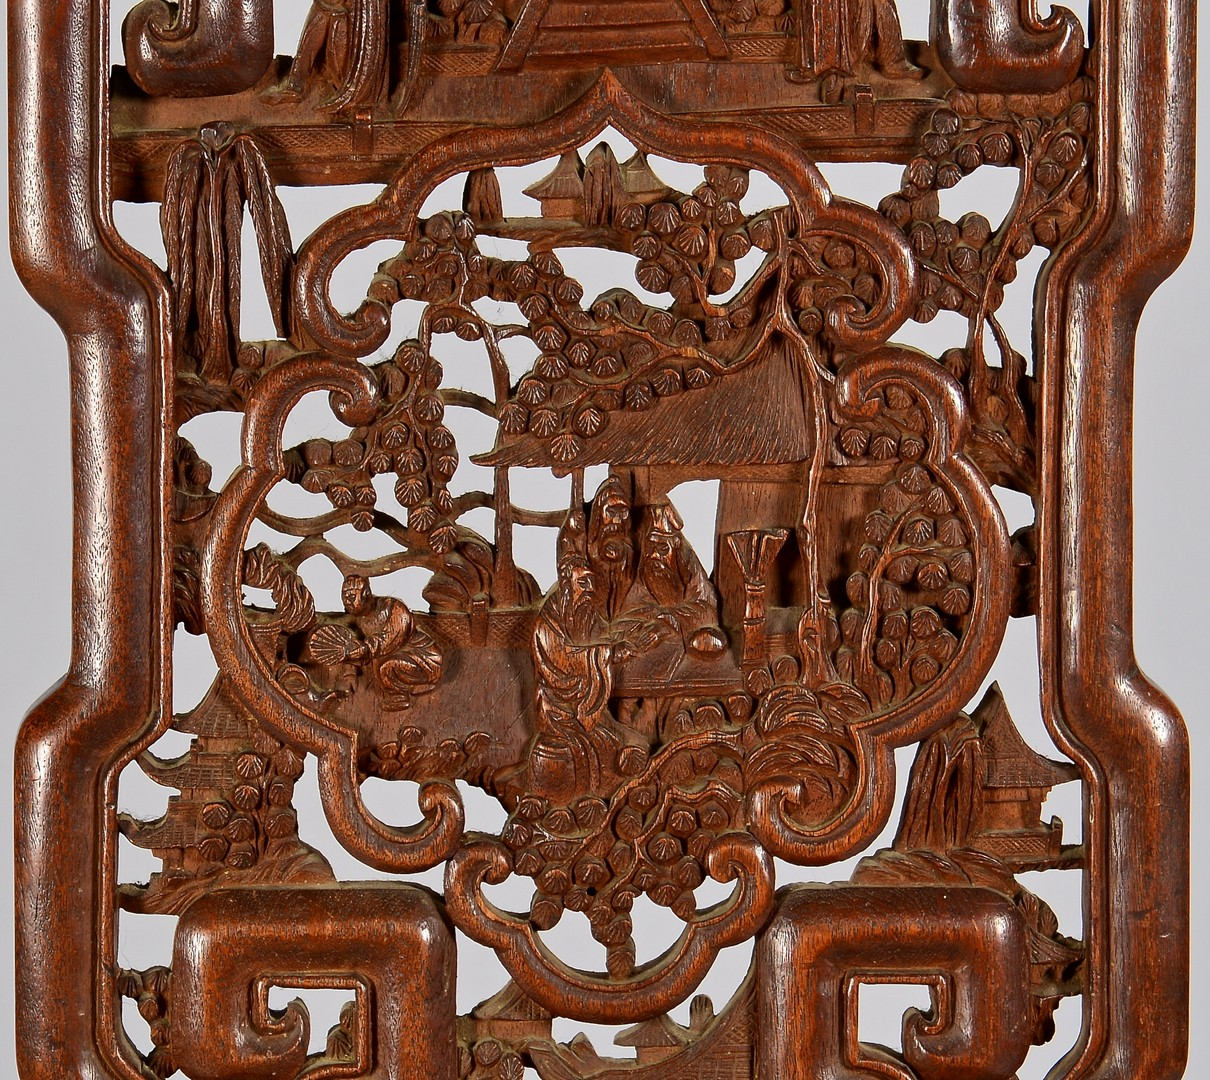 Lot 4010207: Chinese Carved Hardwood Side Chair